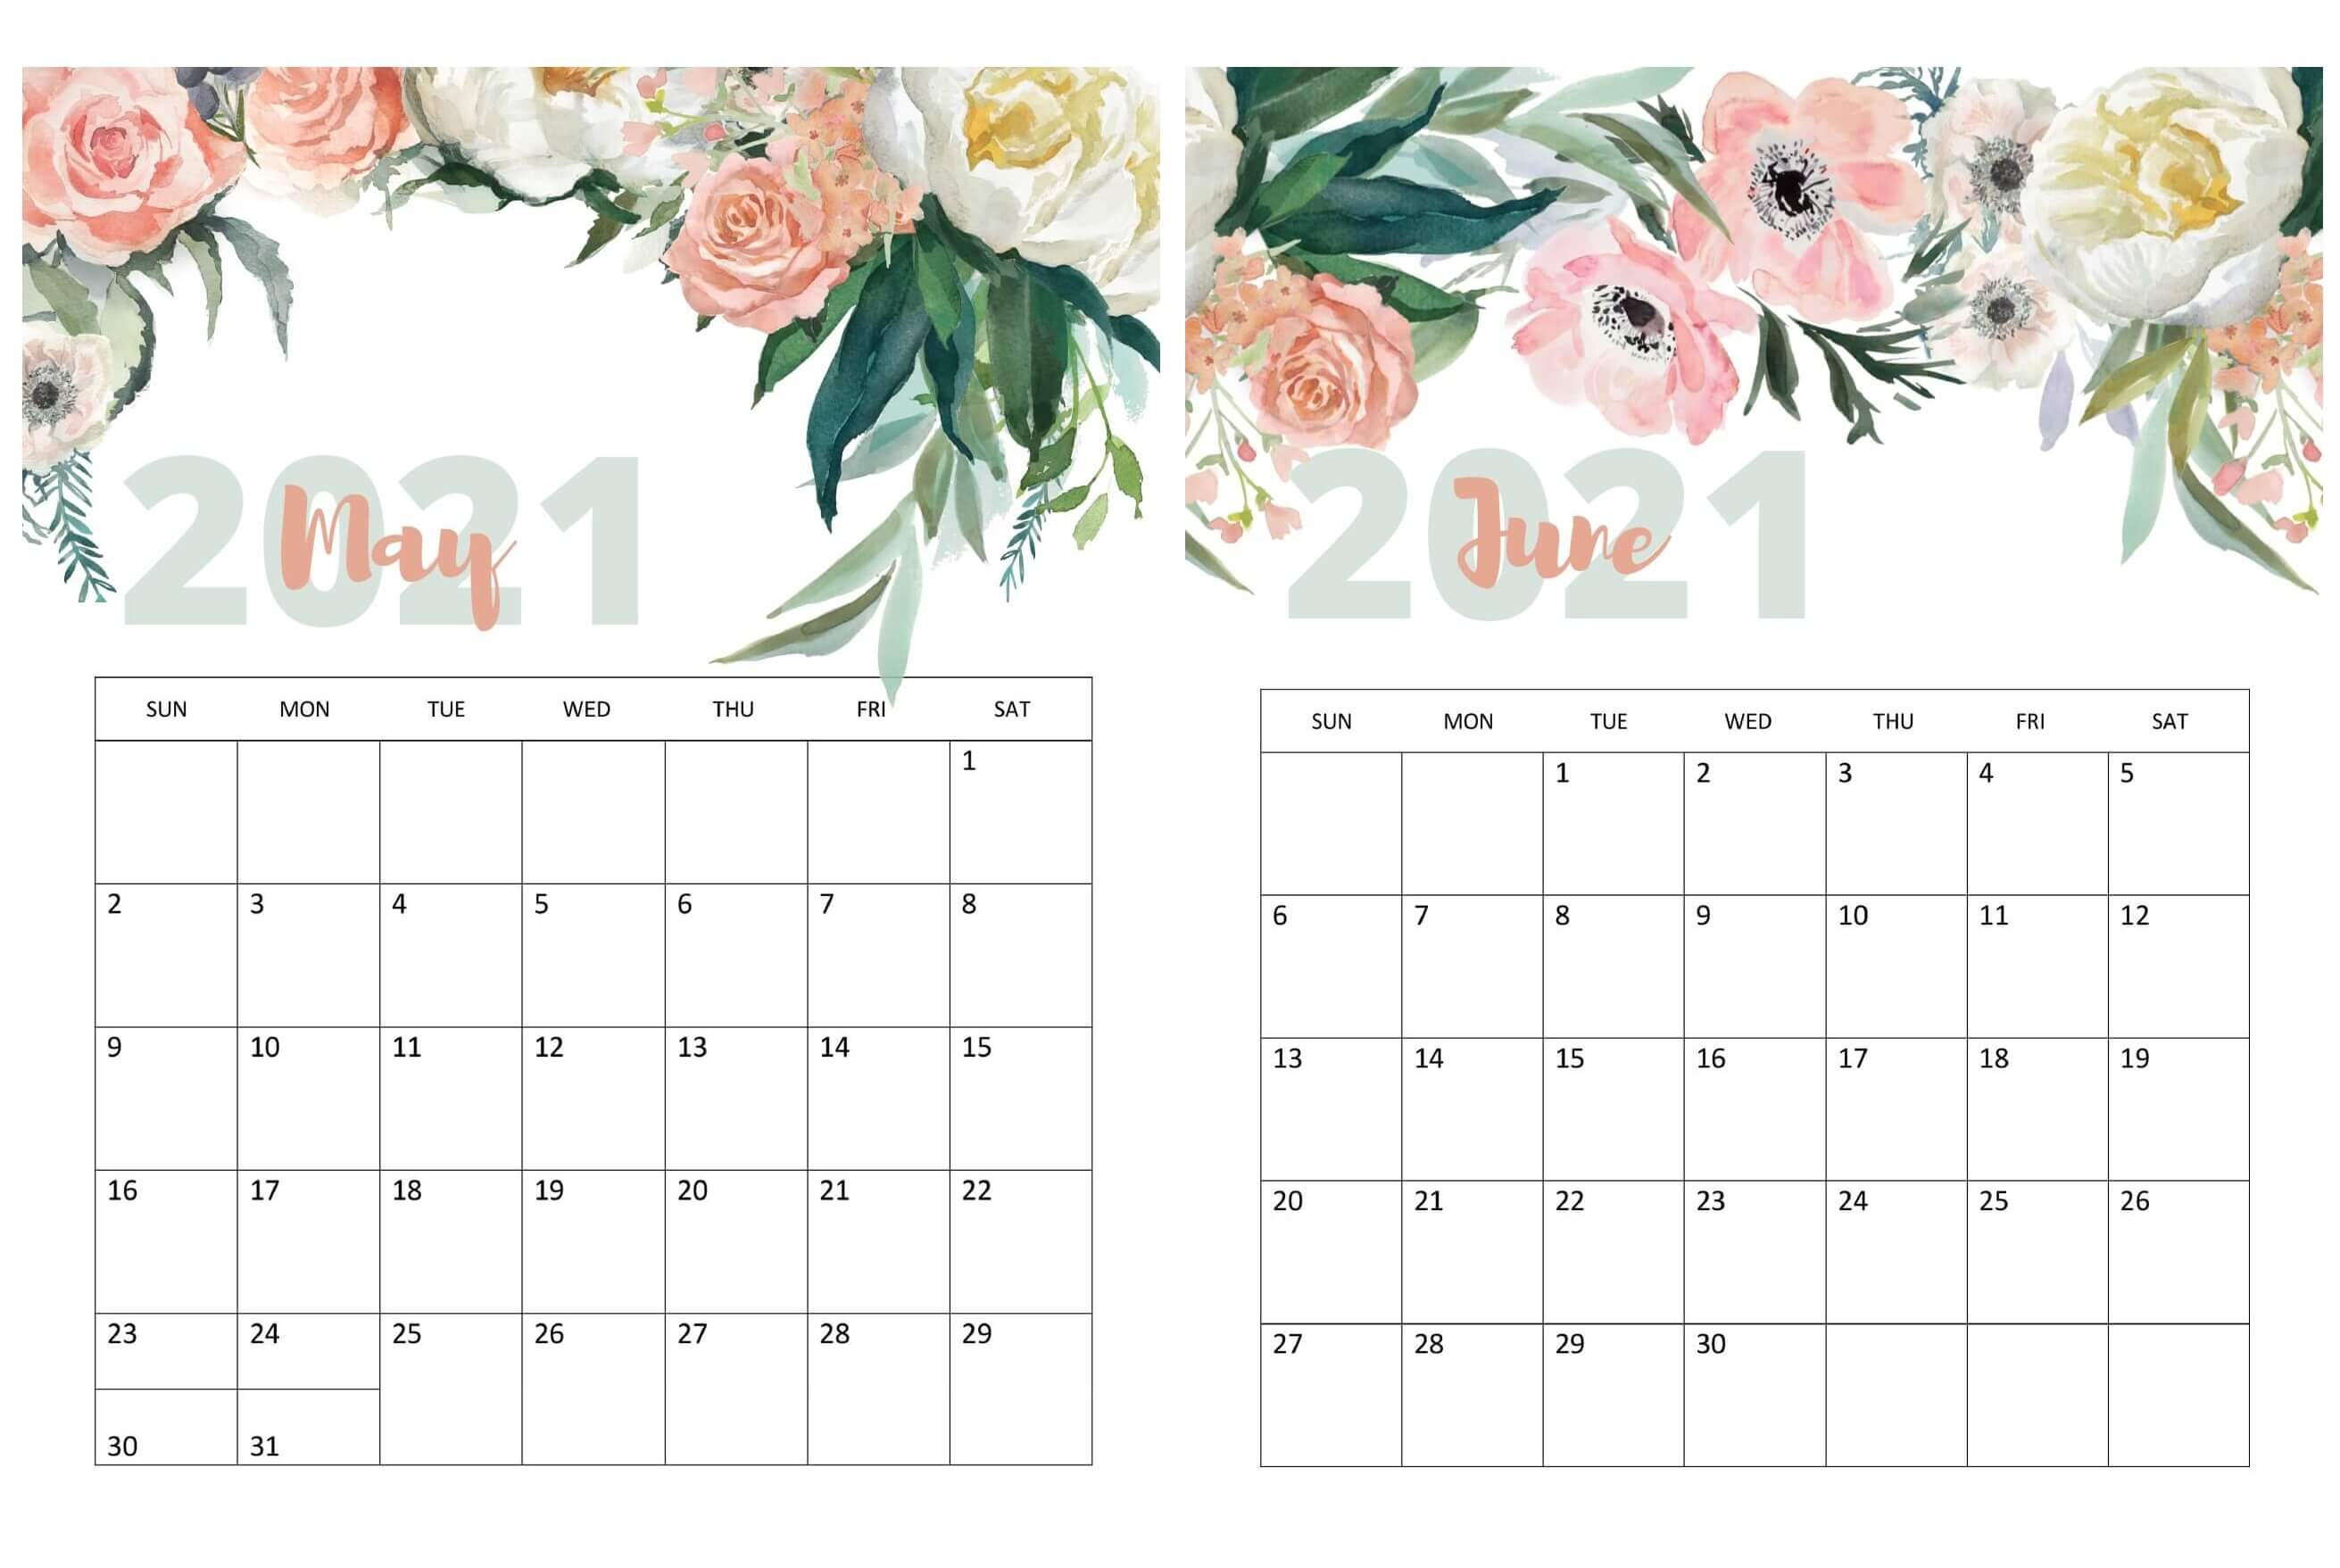 May June 2021 Calendar Templates - Time Management Tools ...